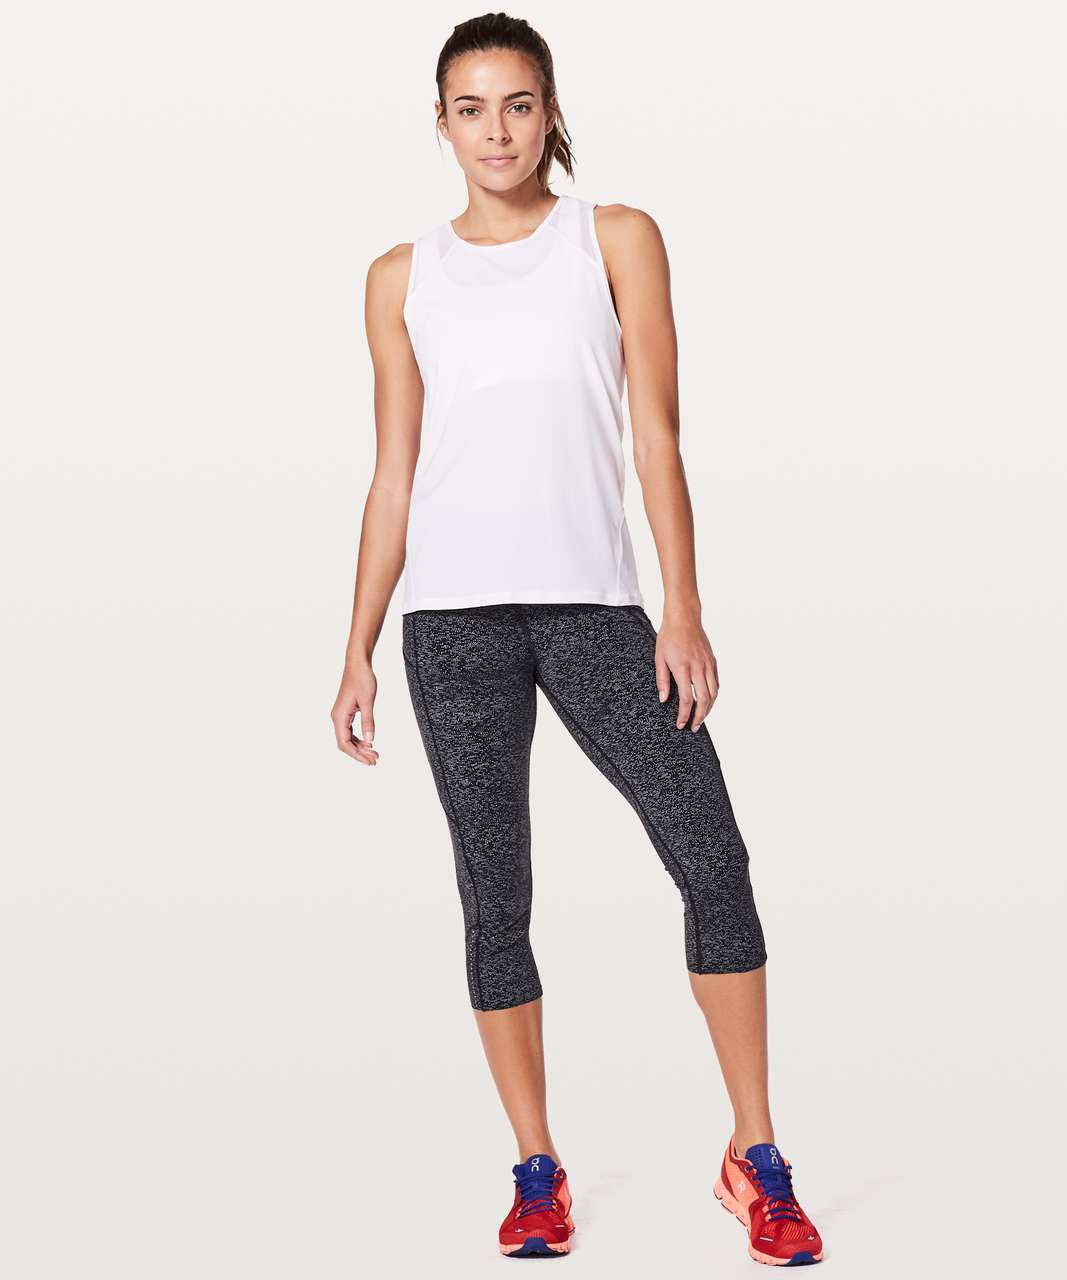 Lululemon For The Run Tank - White